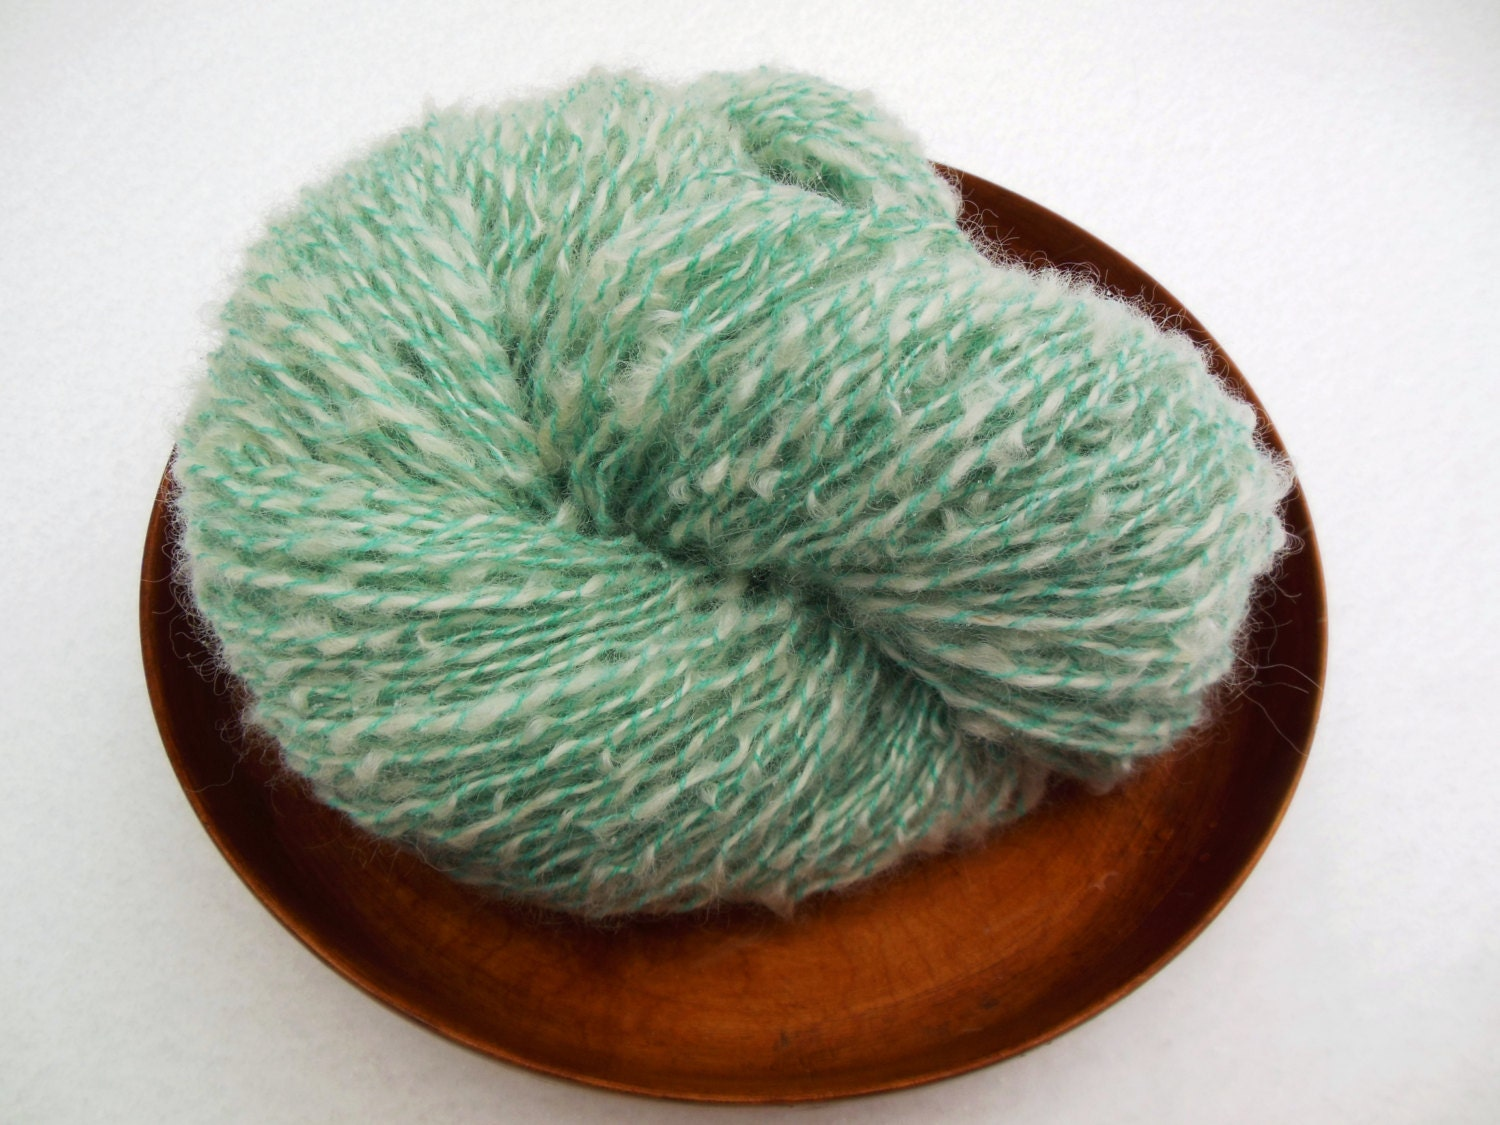 Boucle Yarn : White and Teal handspun boucle yarn by CarolsKnitnSpin on Etsy